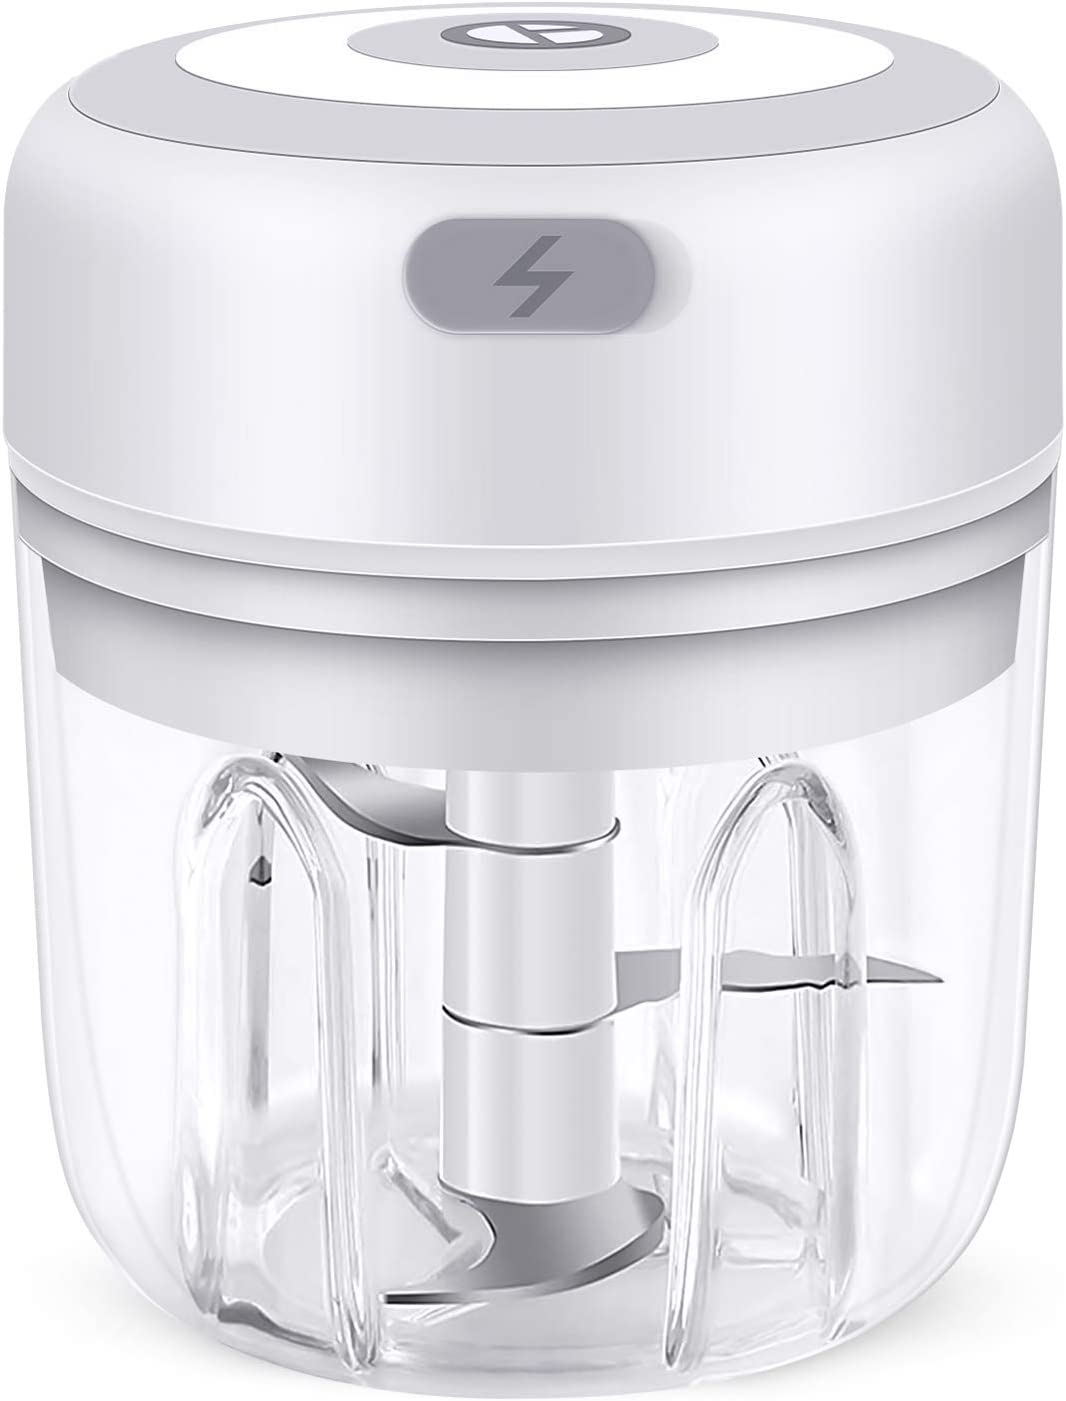 Vsadey Electric Mini Garlic Chopper, Palm-sized Smart Food Chopper Slicer, USB Charging Wireless Portable Kitchen Food Processing Small Tool for Garlic Onions Ginger Meat and Other Fruits Vegetables